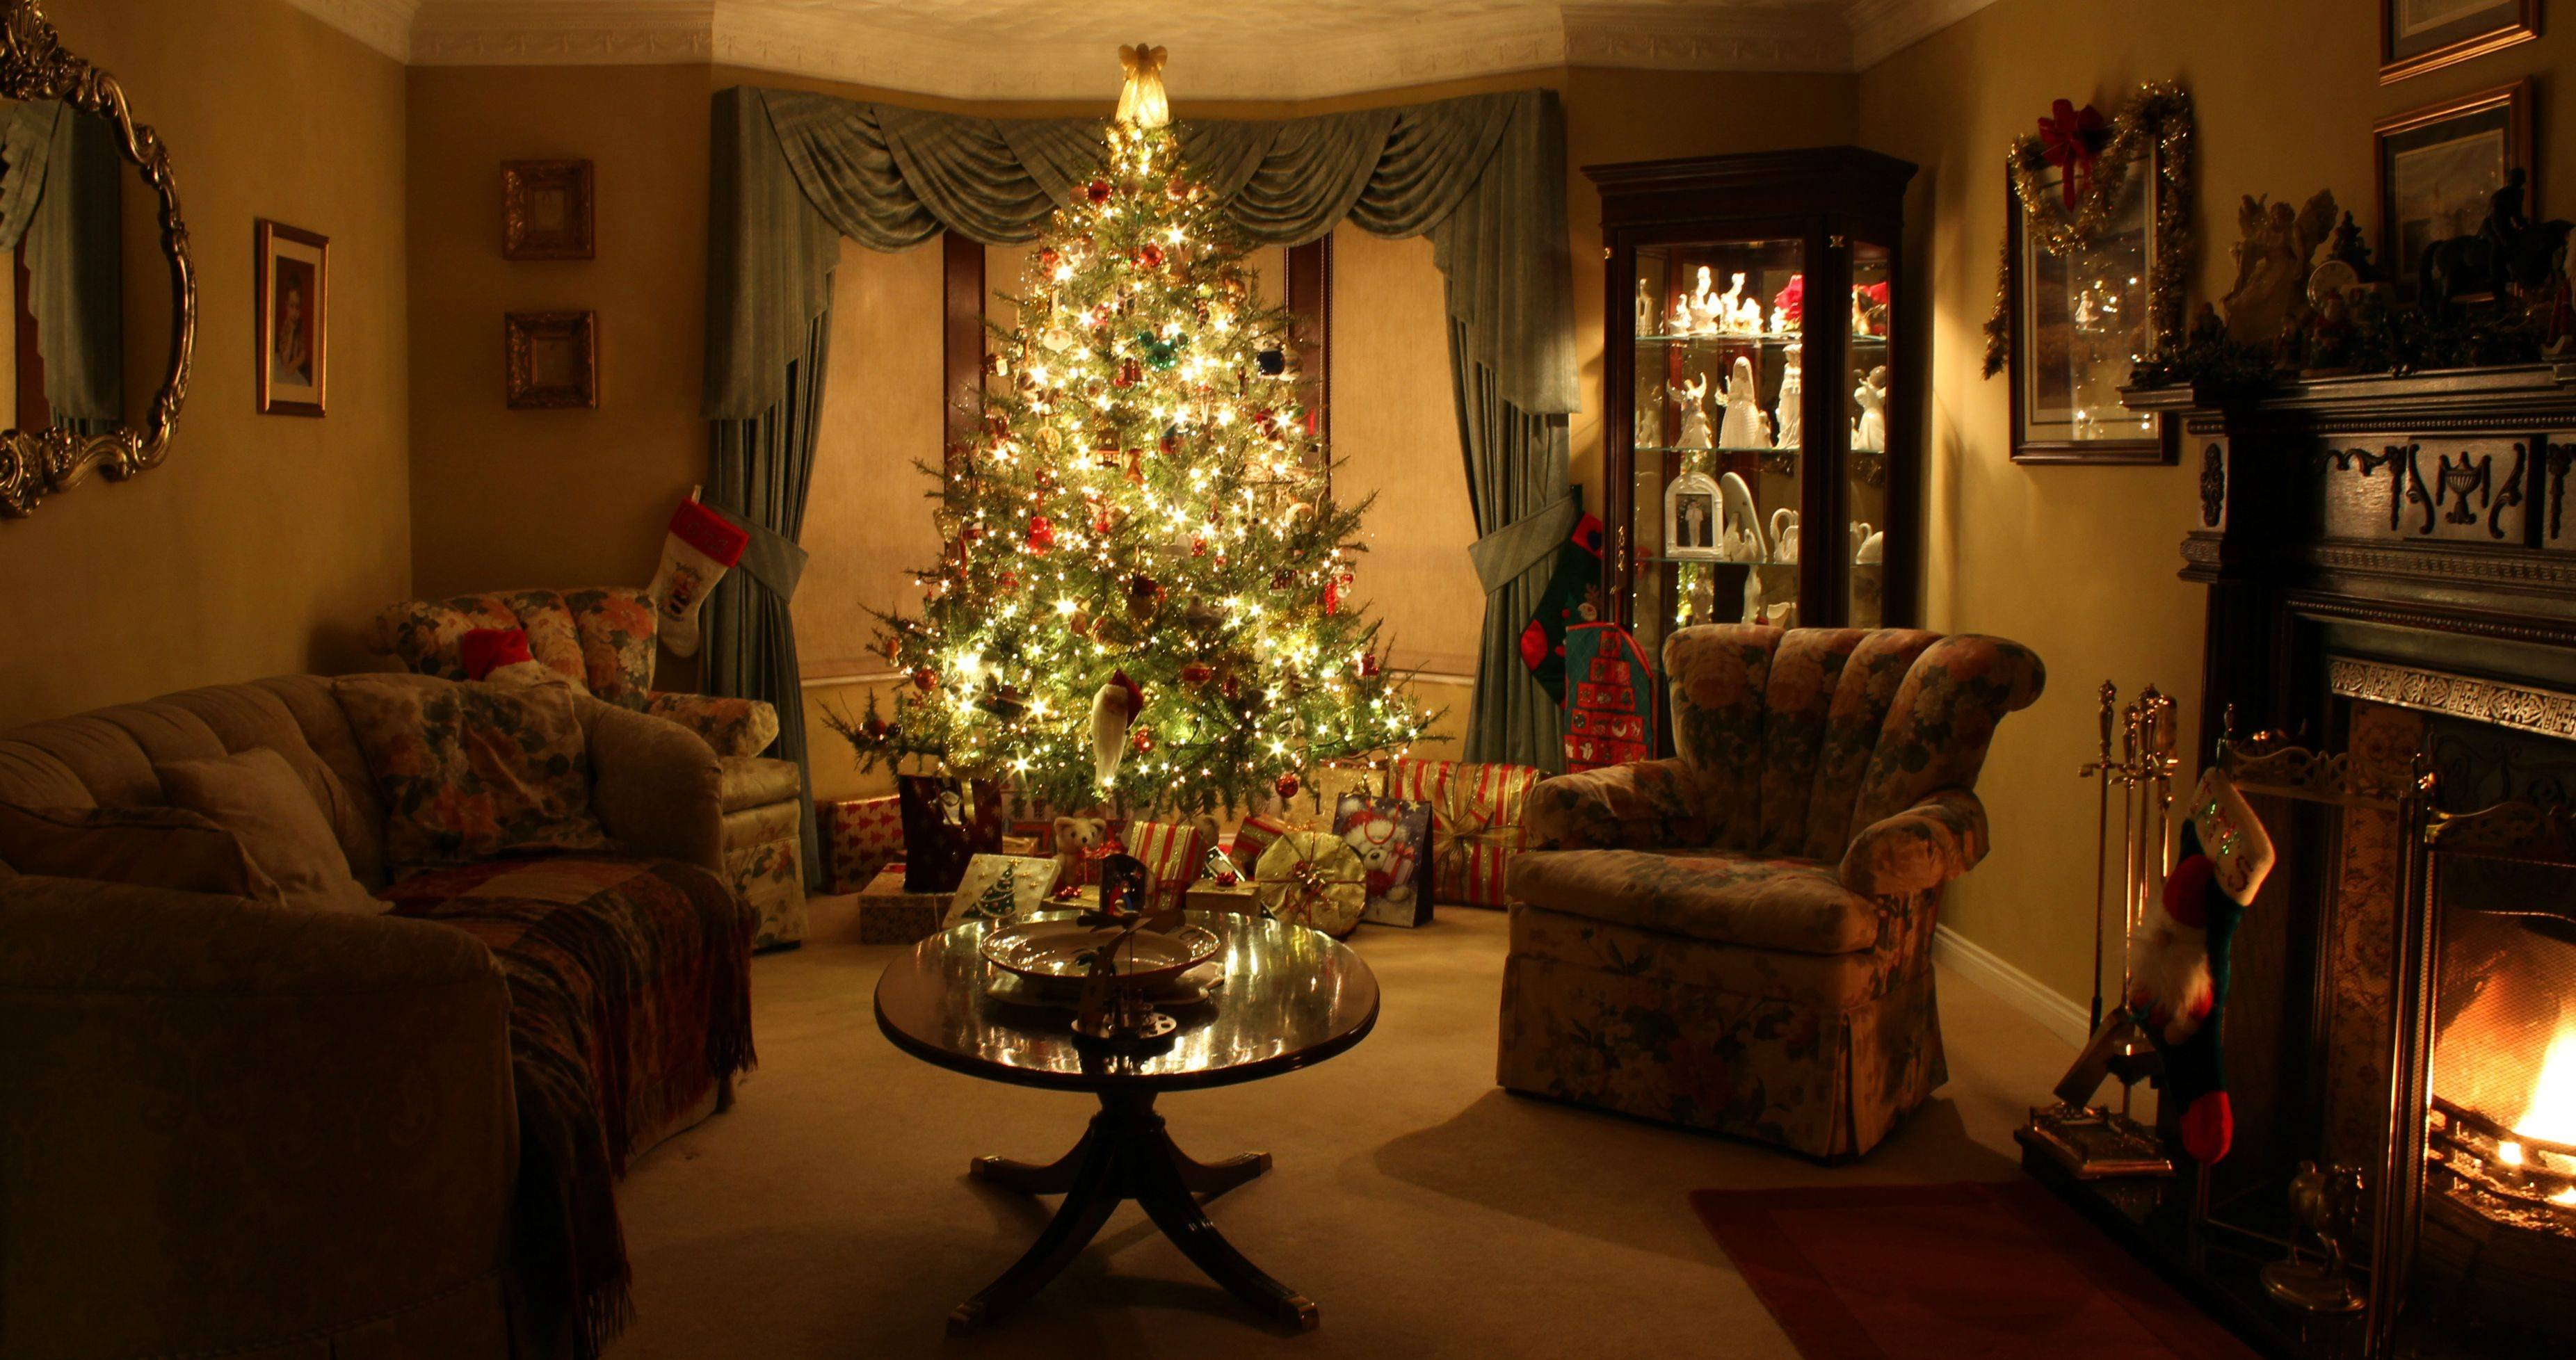 Tree Decor for Living Room Inspirational I Think My Living Room Oozes Christmas if I Say so Myself Pics